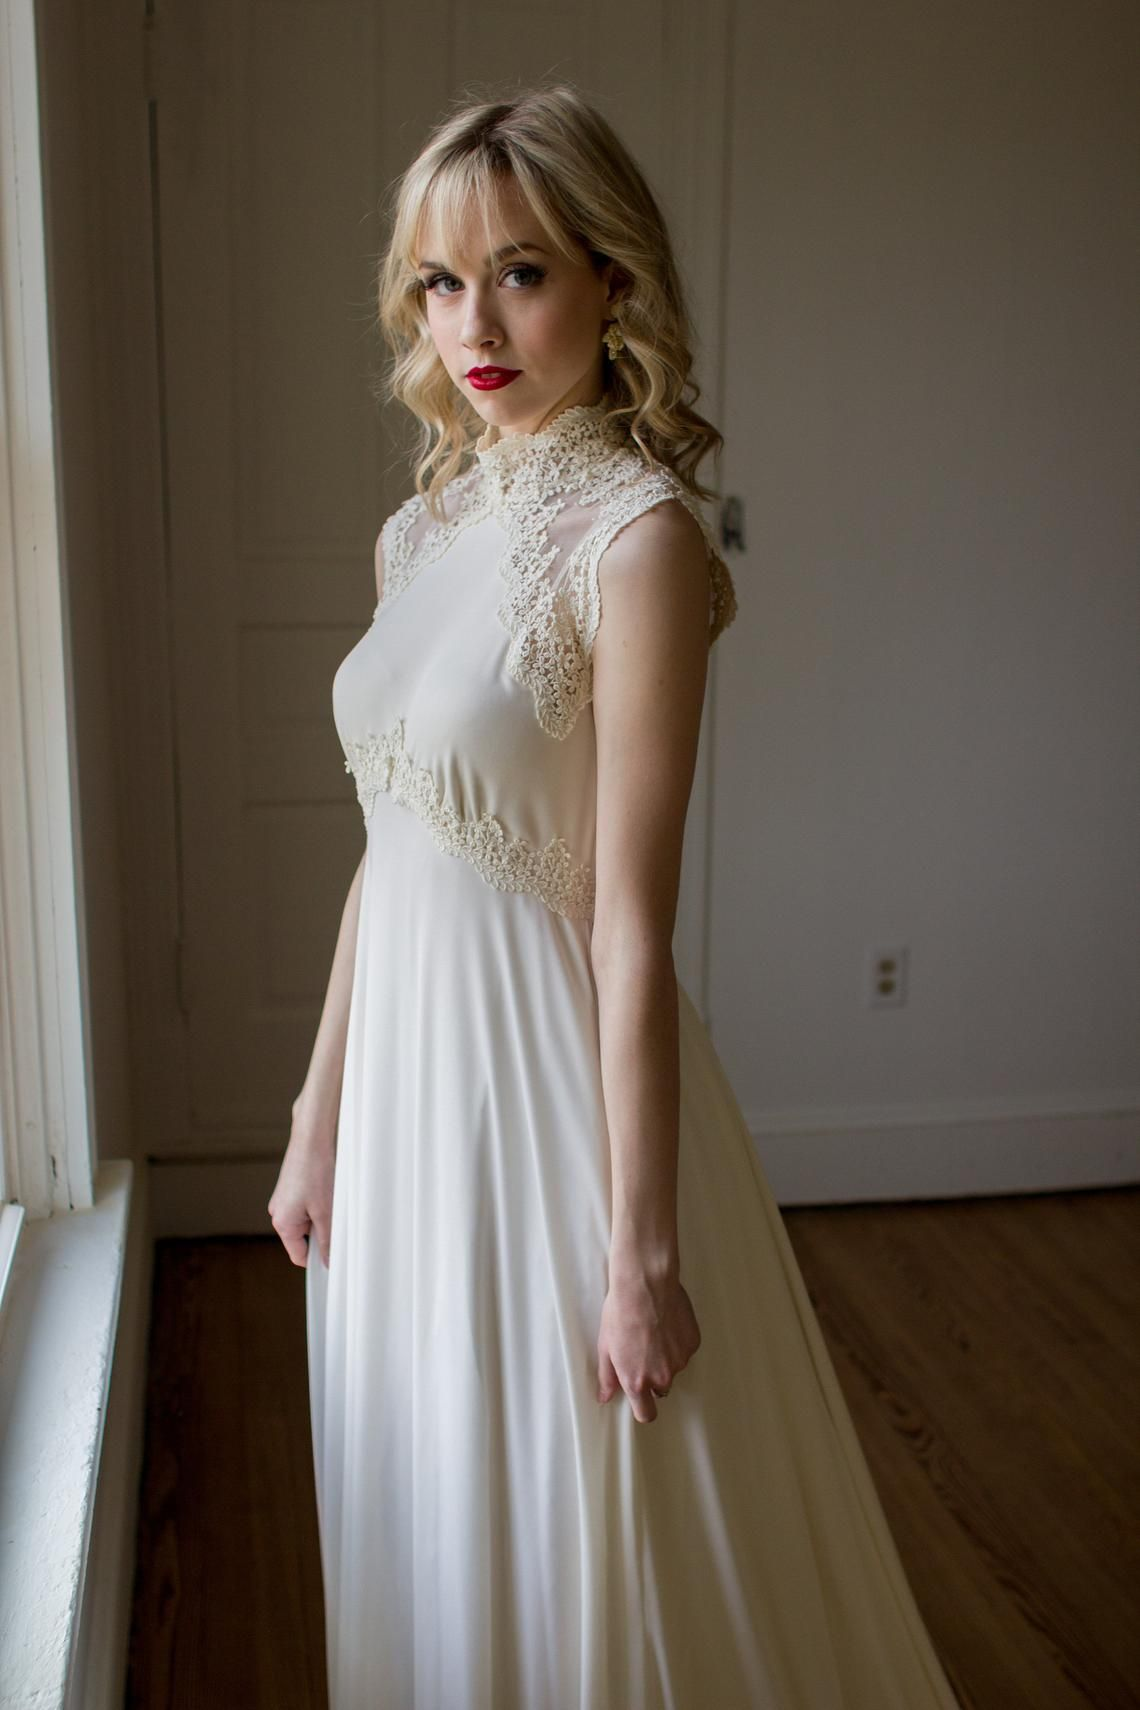 Vintage 1970's Jersey and Lace sleeveless wedding gown